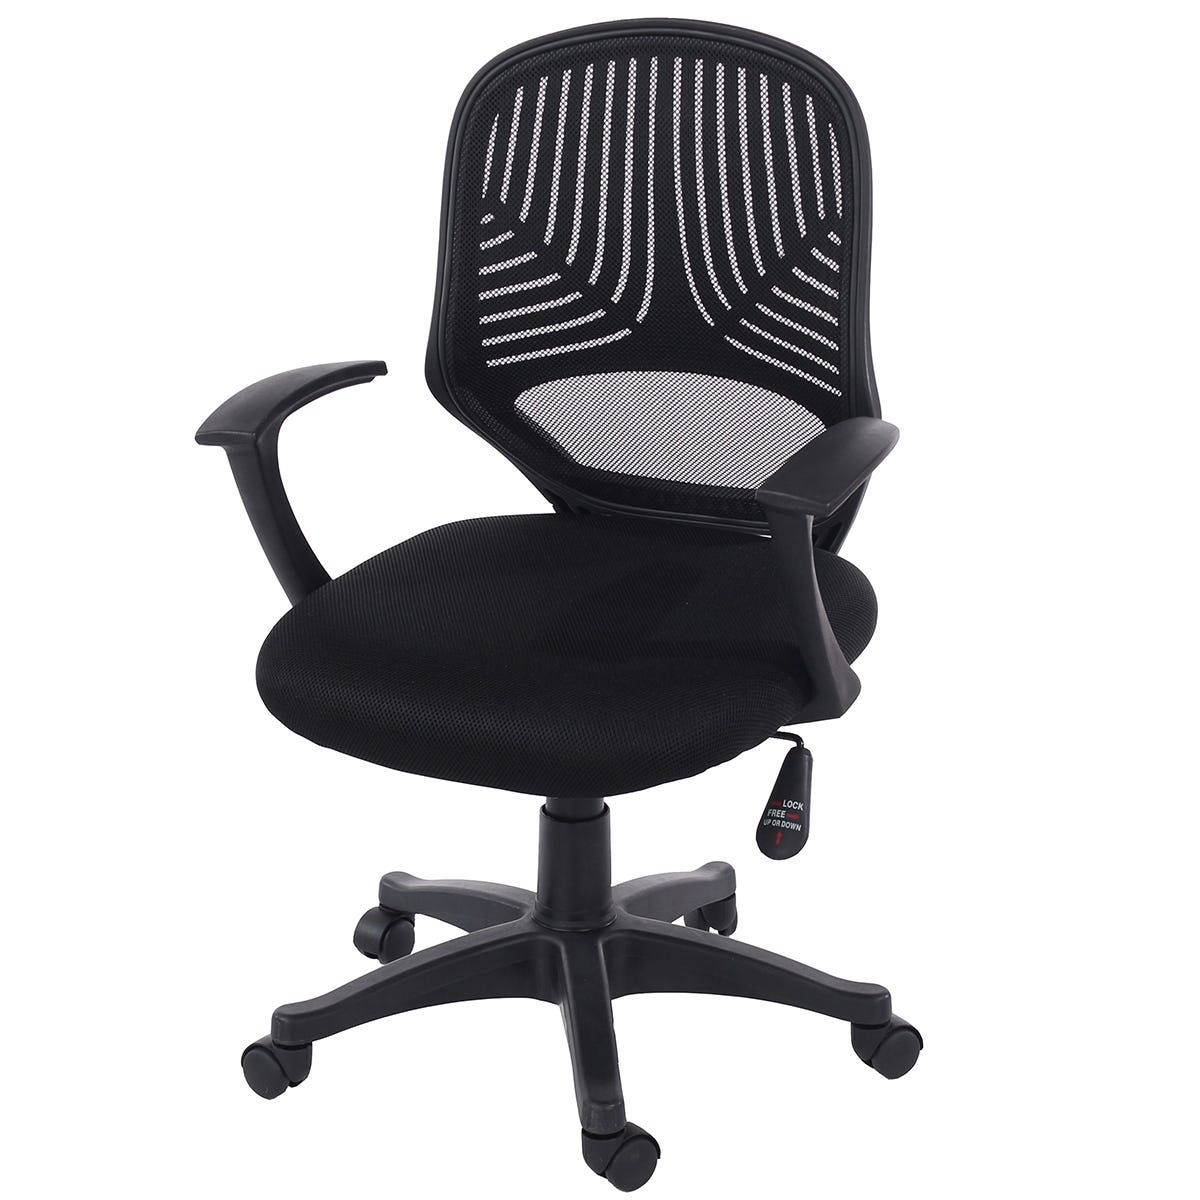 Core Products Evia Home Office Chair with Mesh Back - Black